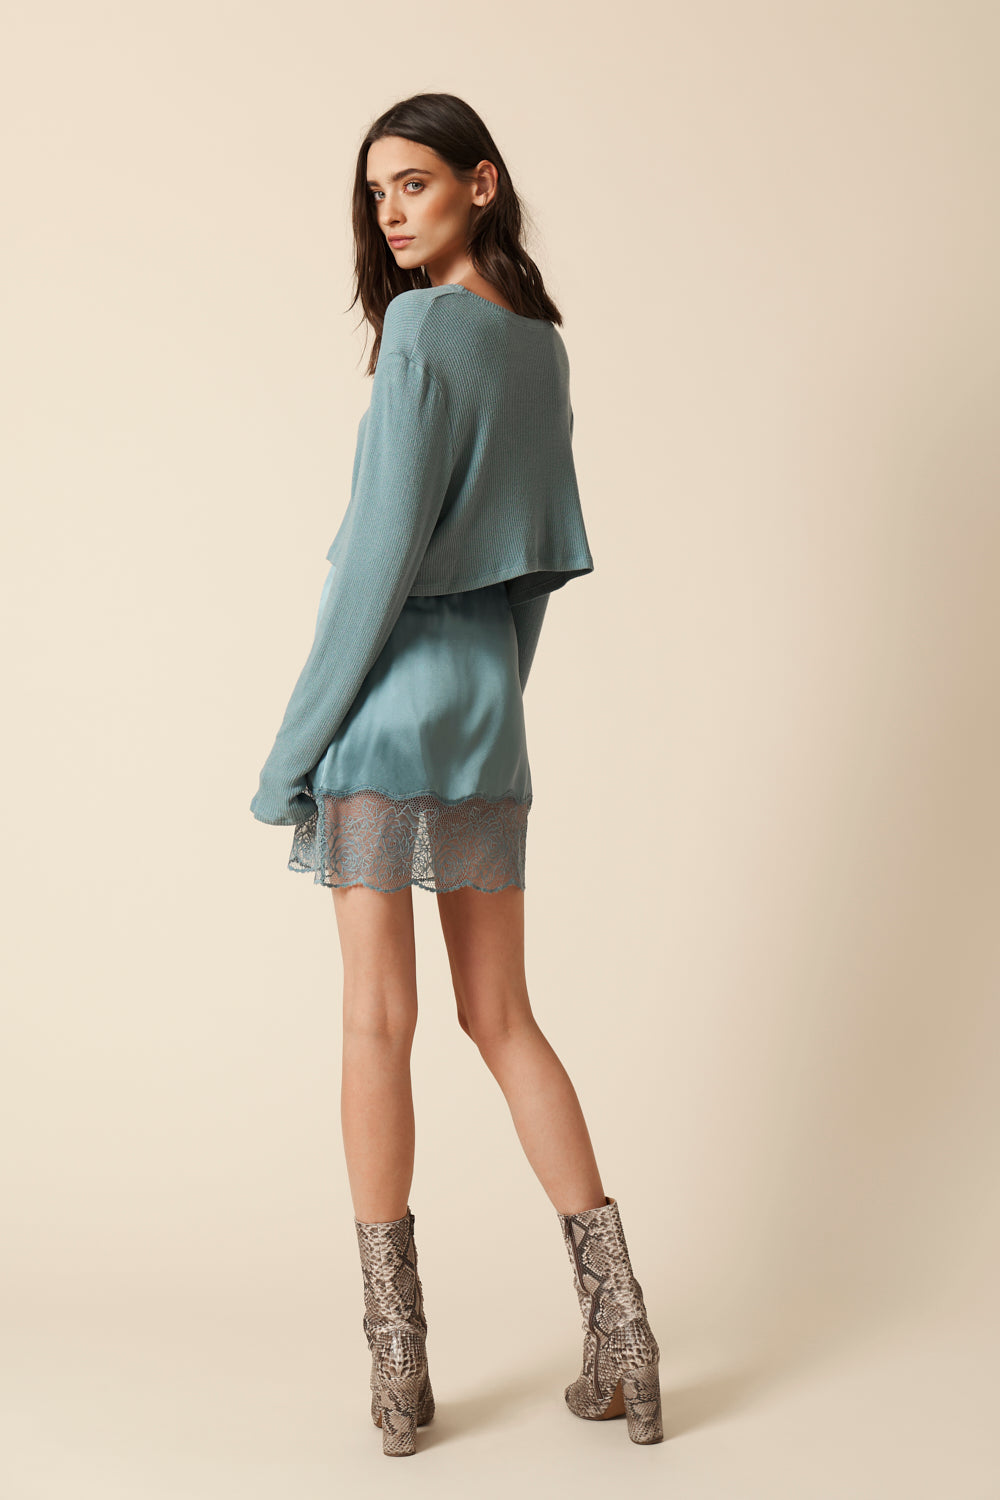 XANDER SILK WITH LACE SKIRT| ICE